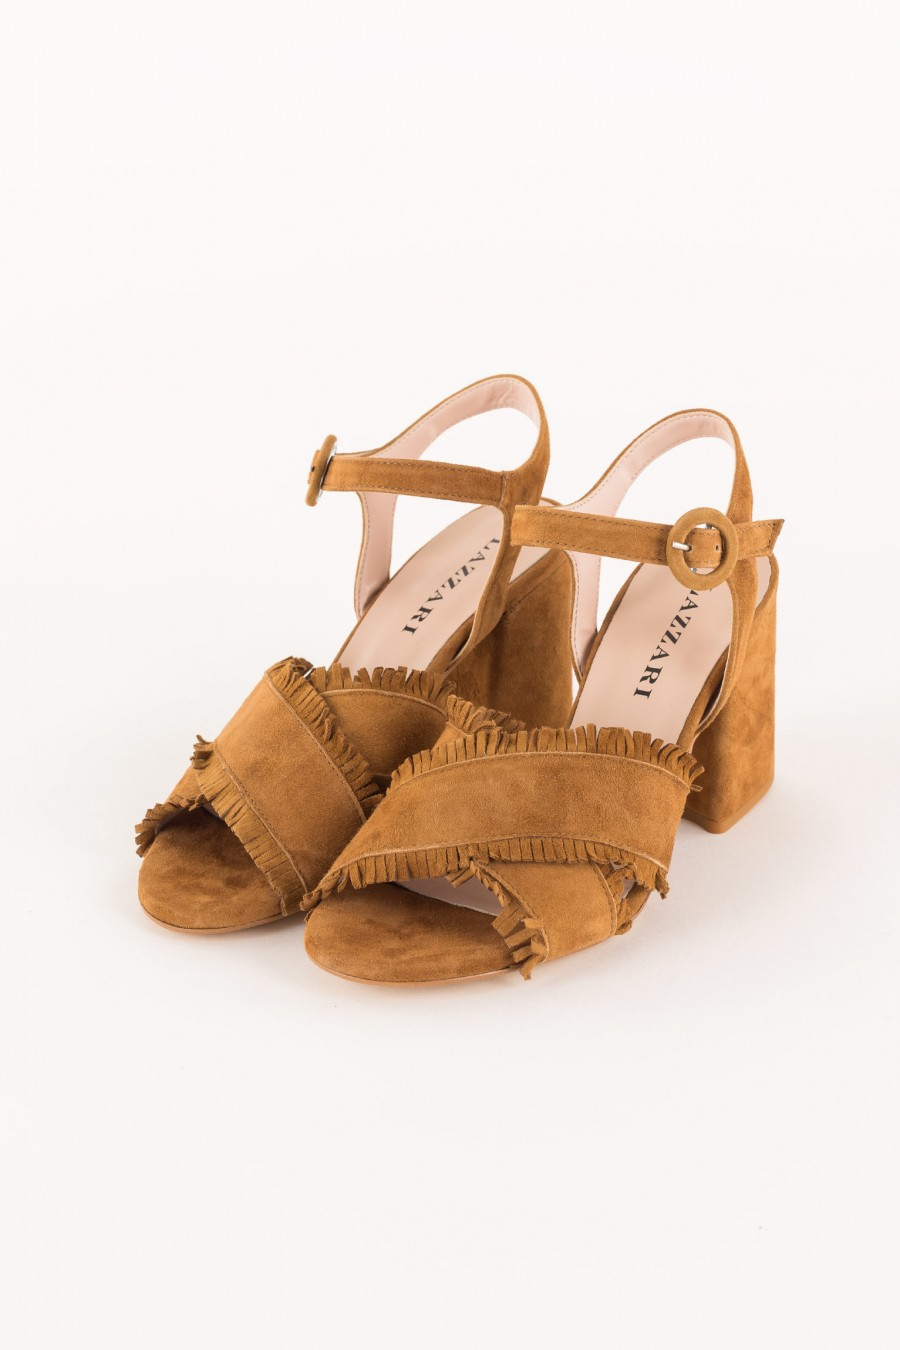 leather-colored sandal with fringes